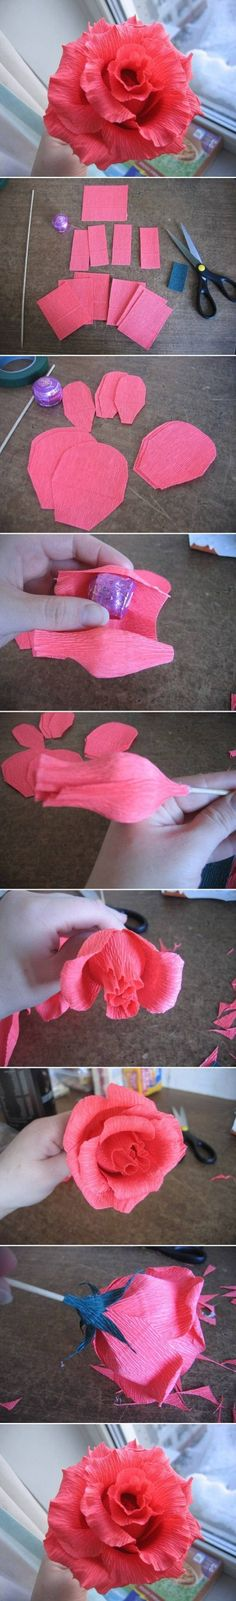 Tissue paper roses are a super cute way to give your loved one a handmade gift.